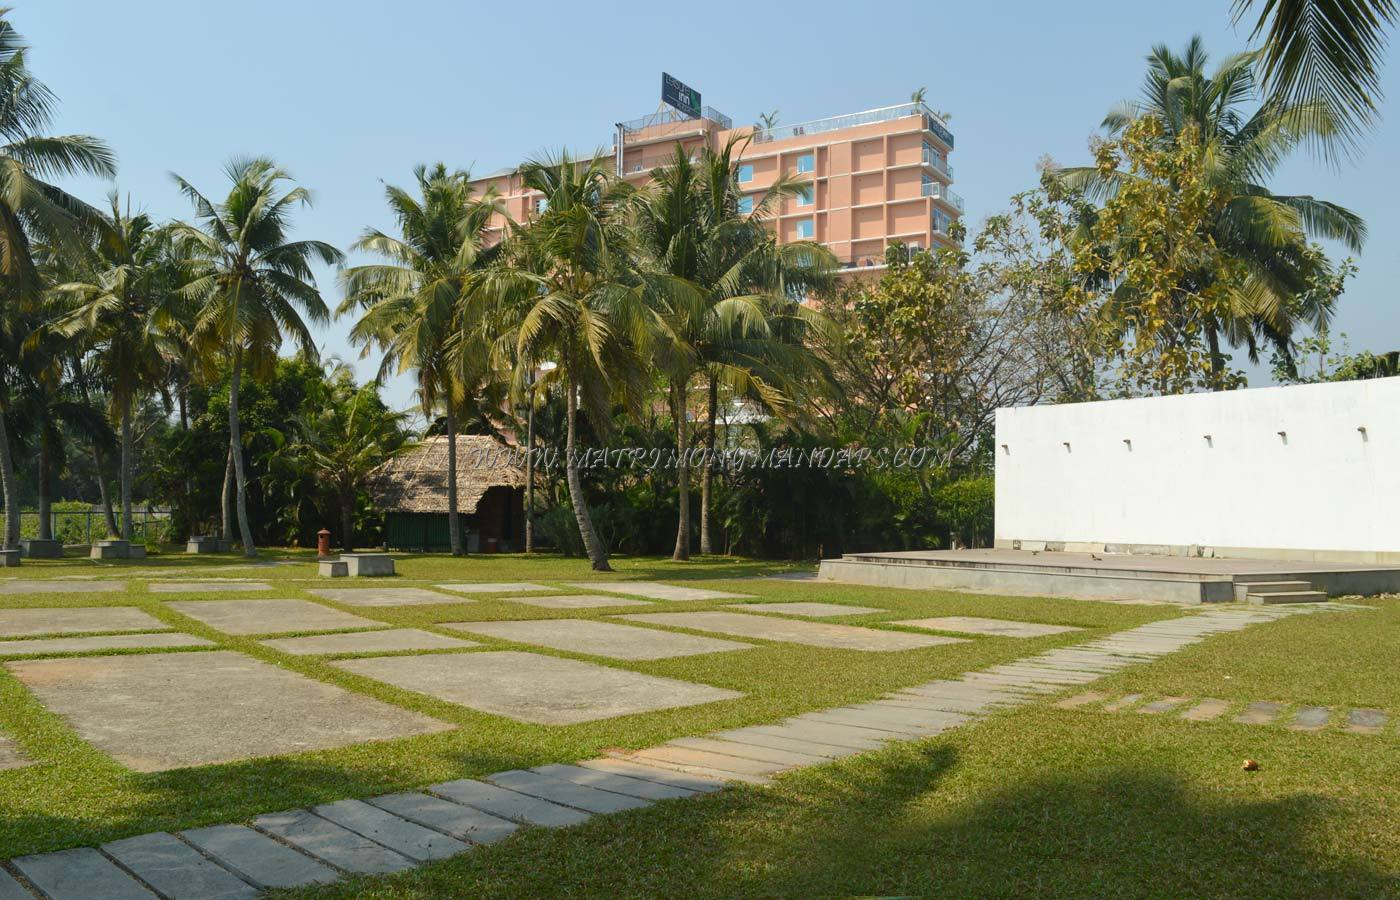 Find the availability of the BTH Sarovaram Maithanam in Maradu, Kochi and avail special offers